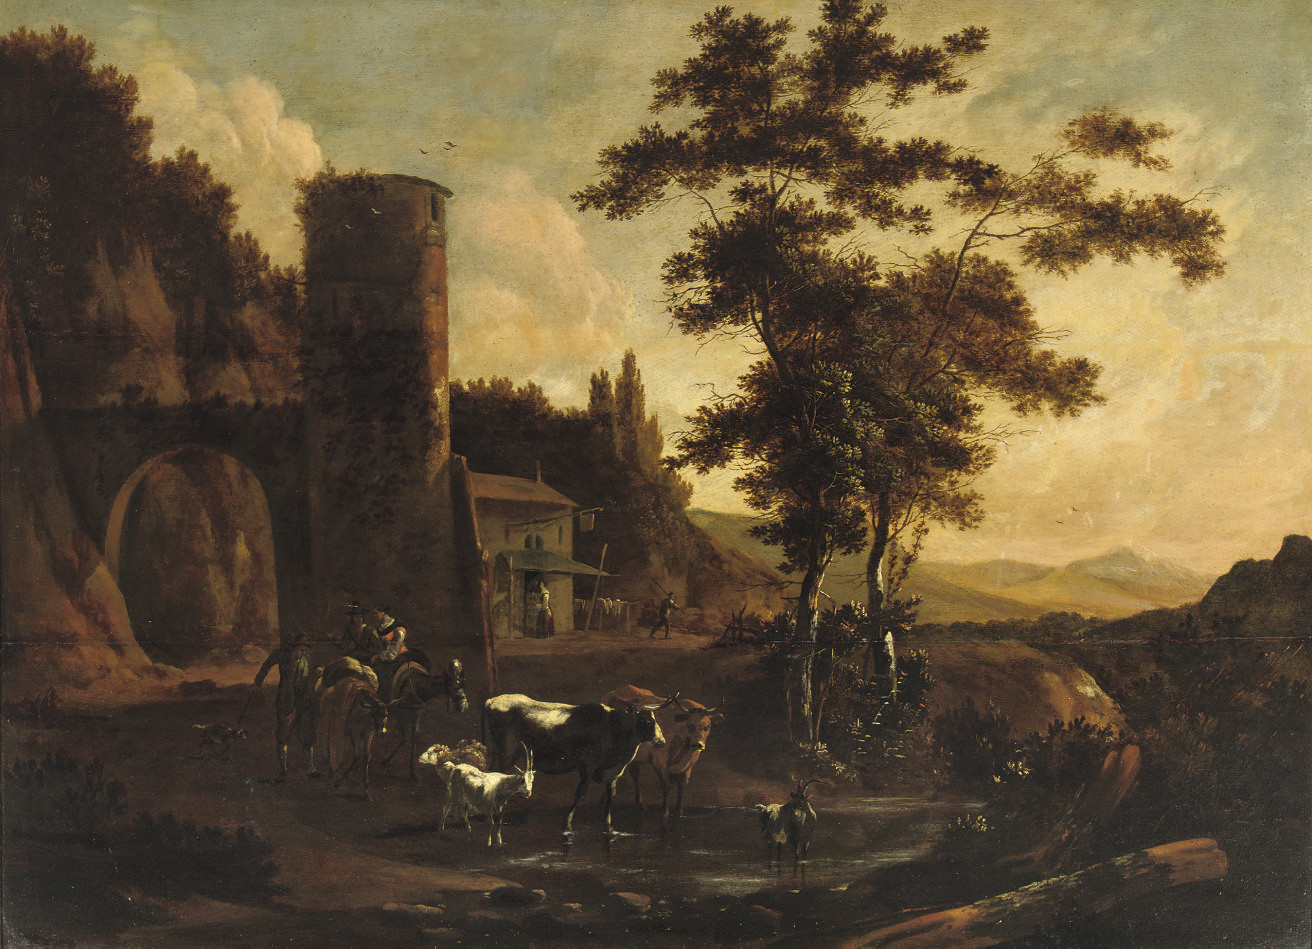 A wooded landscape with peasants and their cattle, goats and sheep by a tower